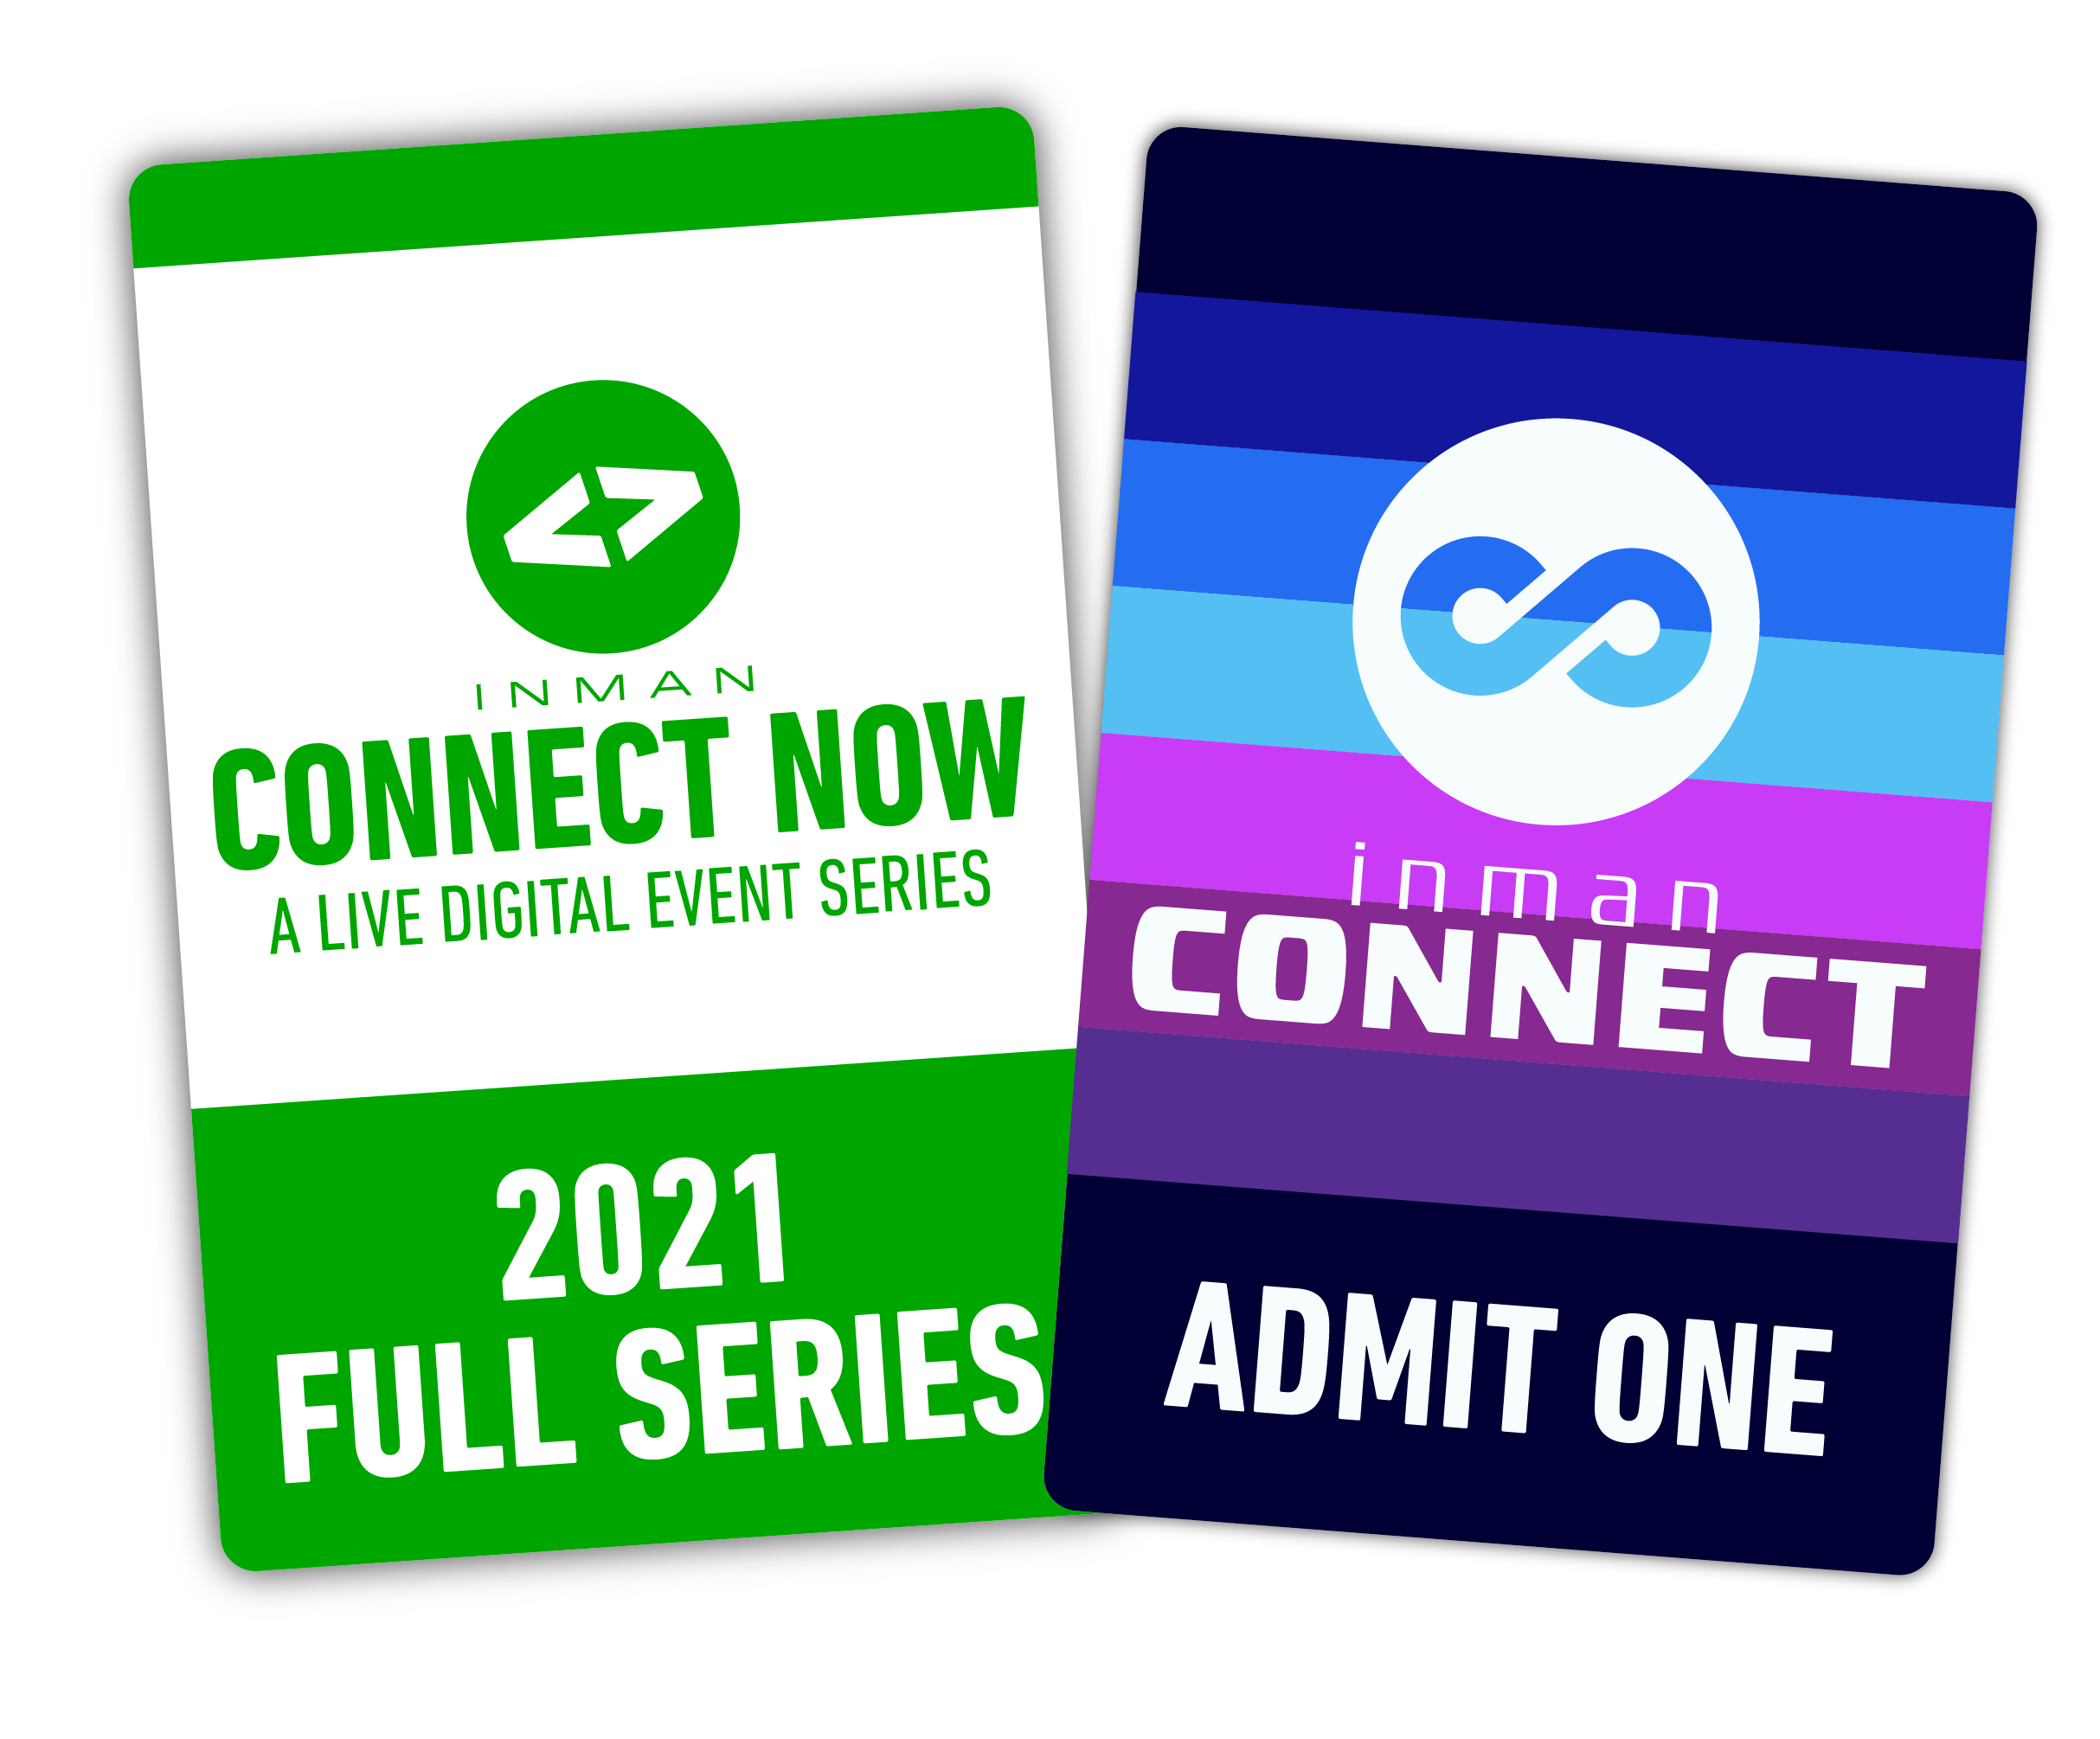 9-Event Bundle: June Inman Connect + Connect Now Full Series